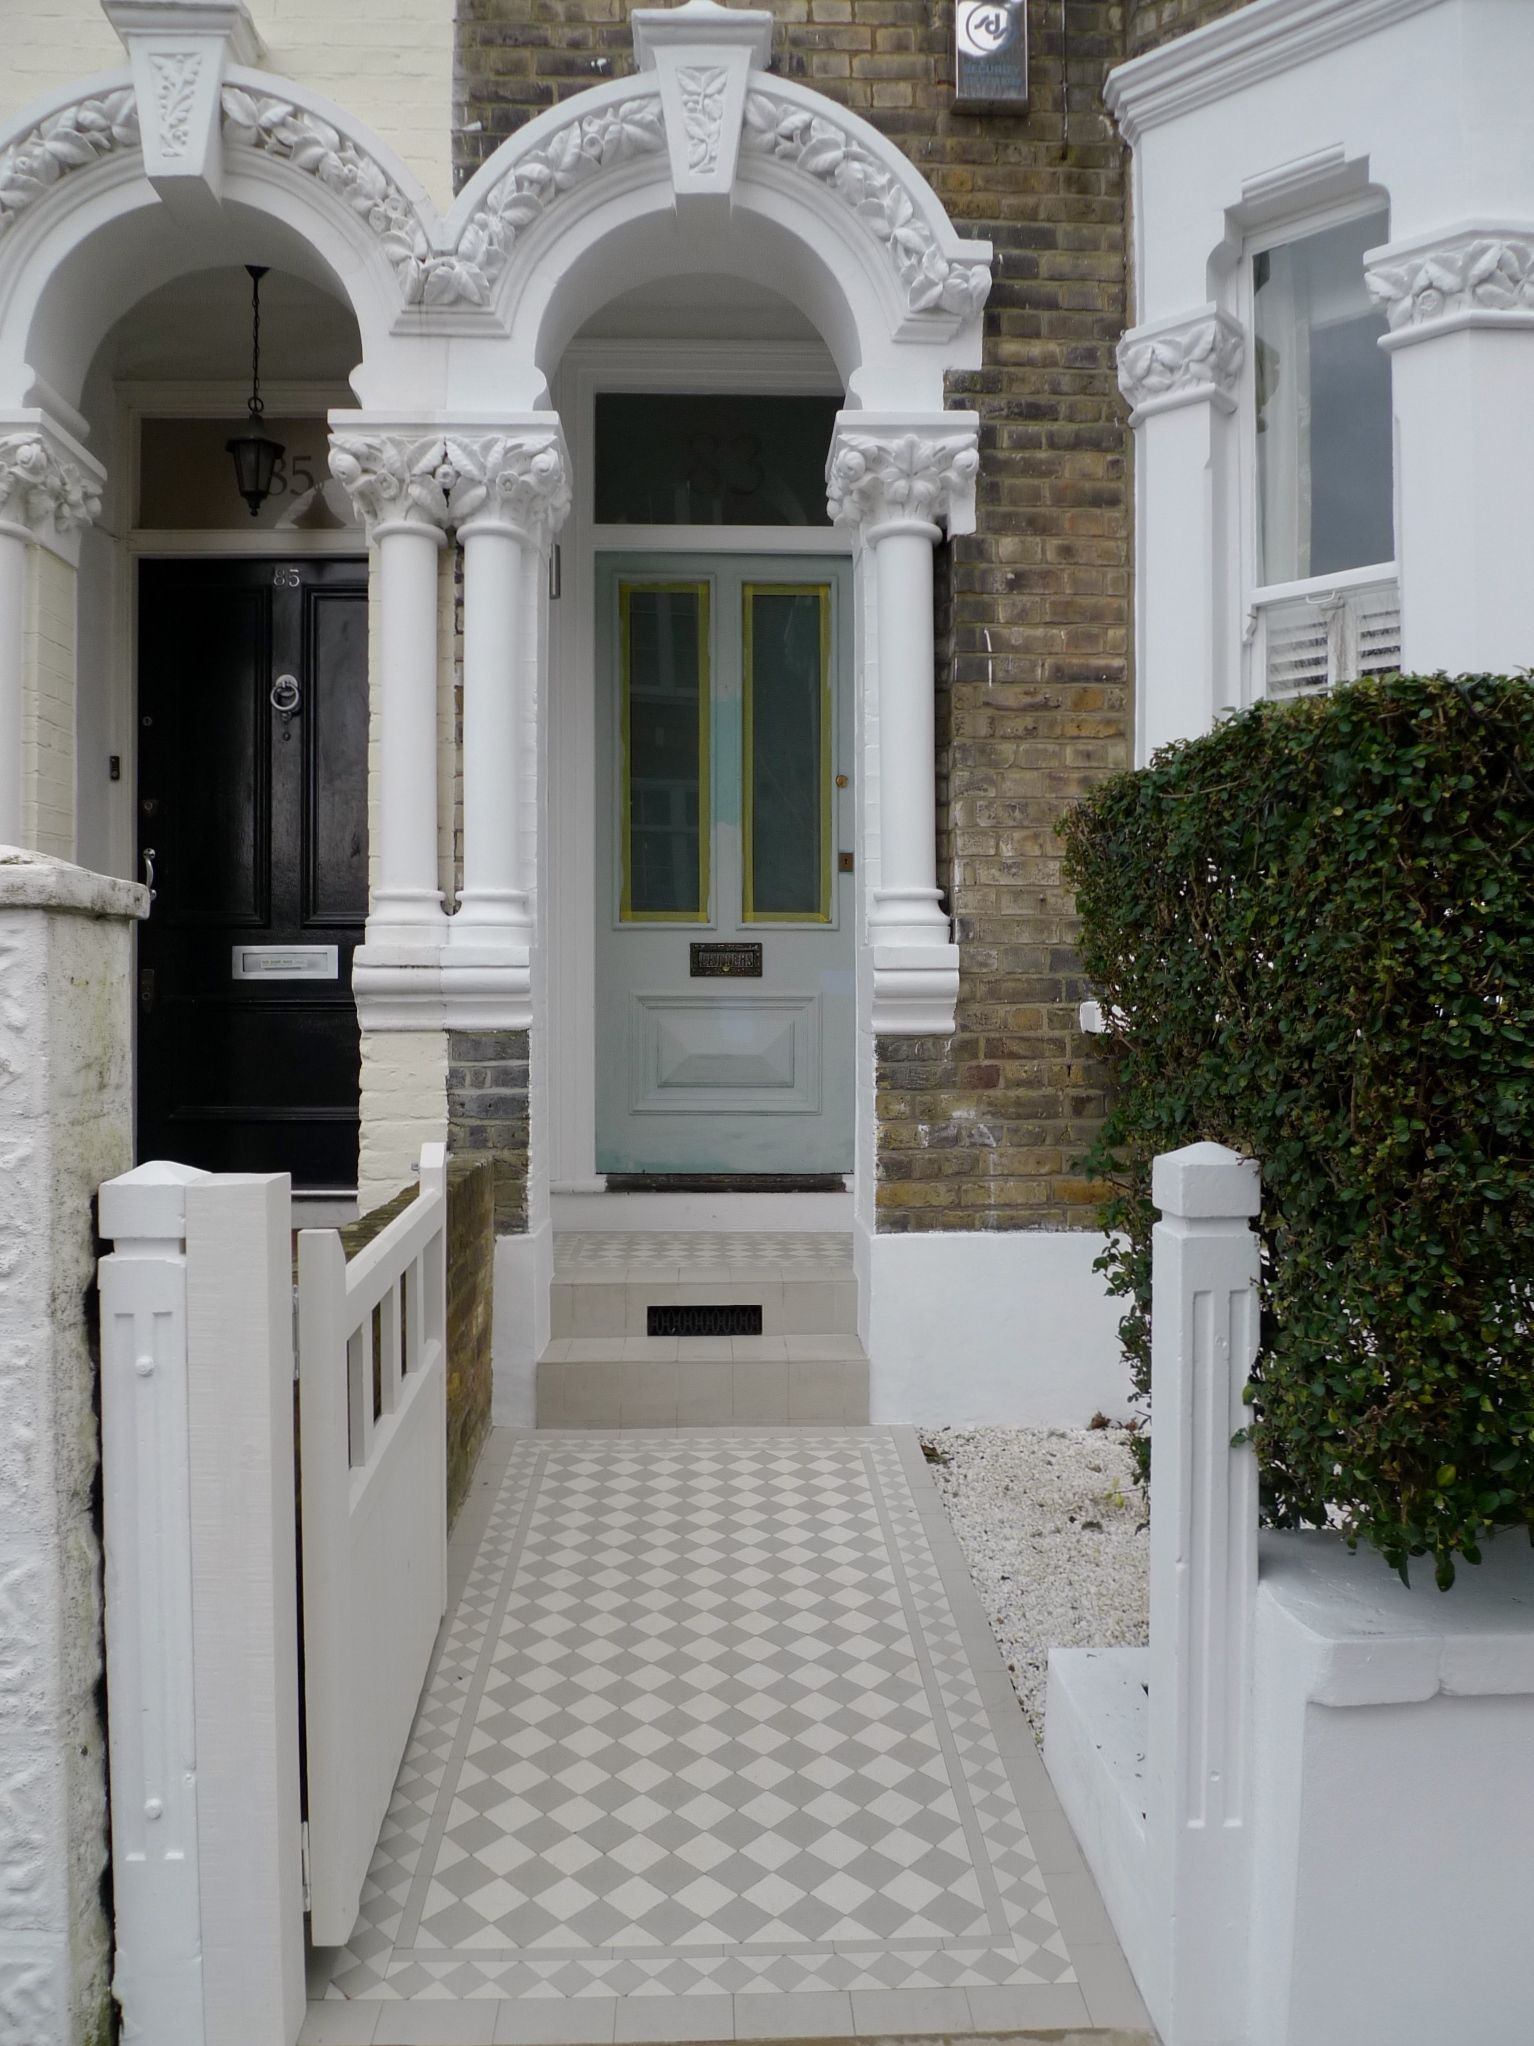 victorian mosaic tile path design london (With images ...